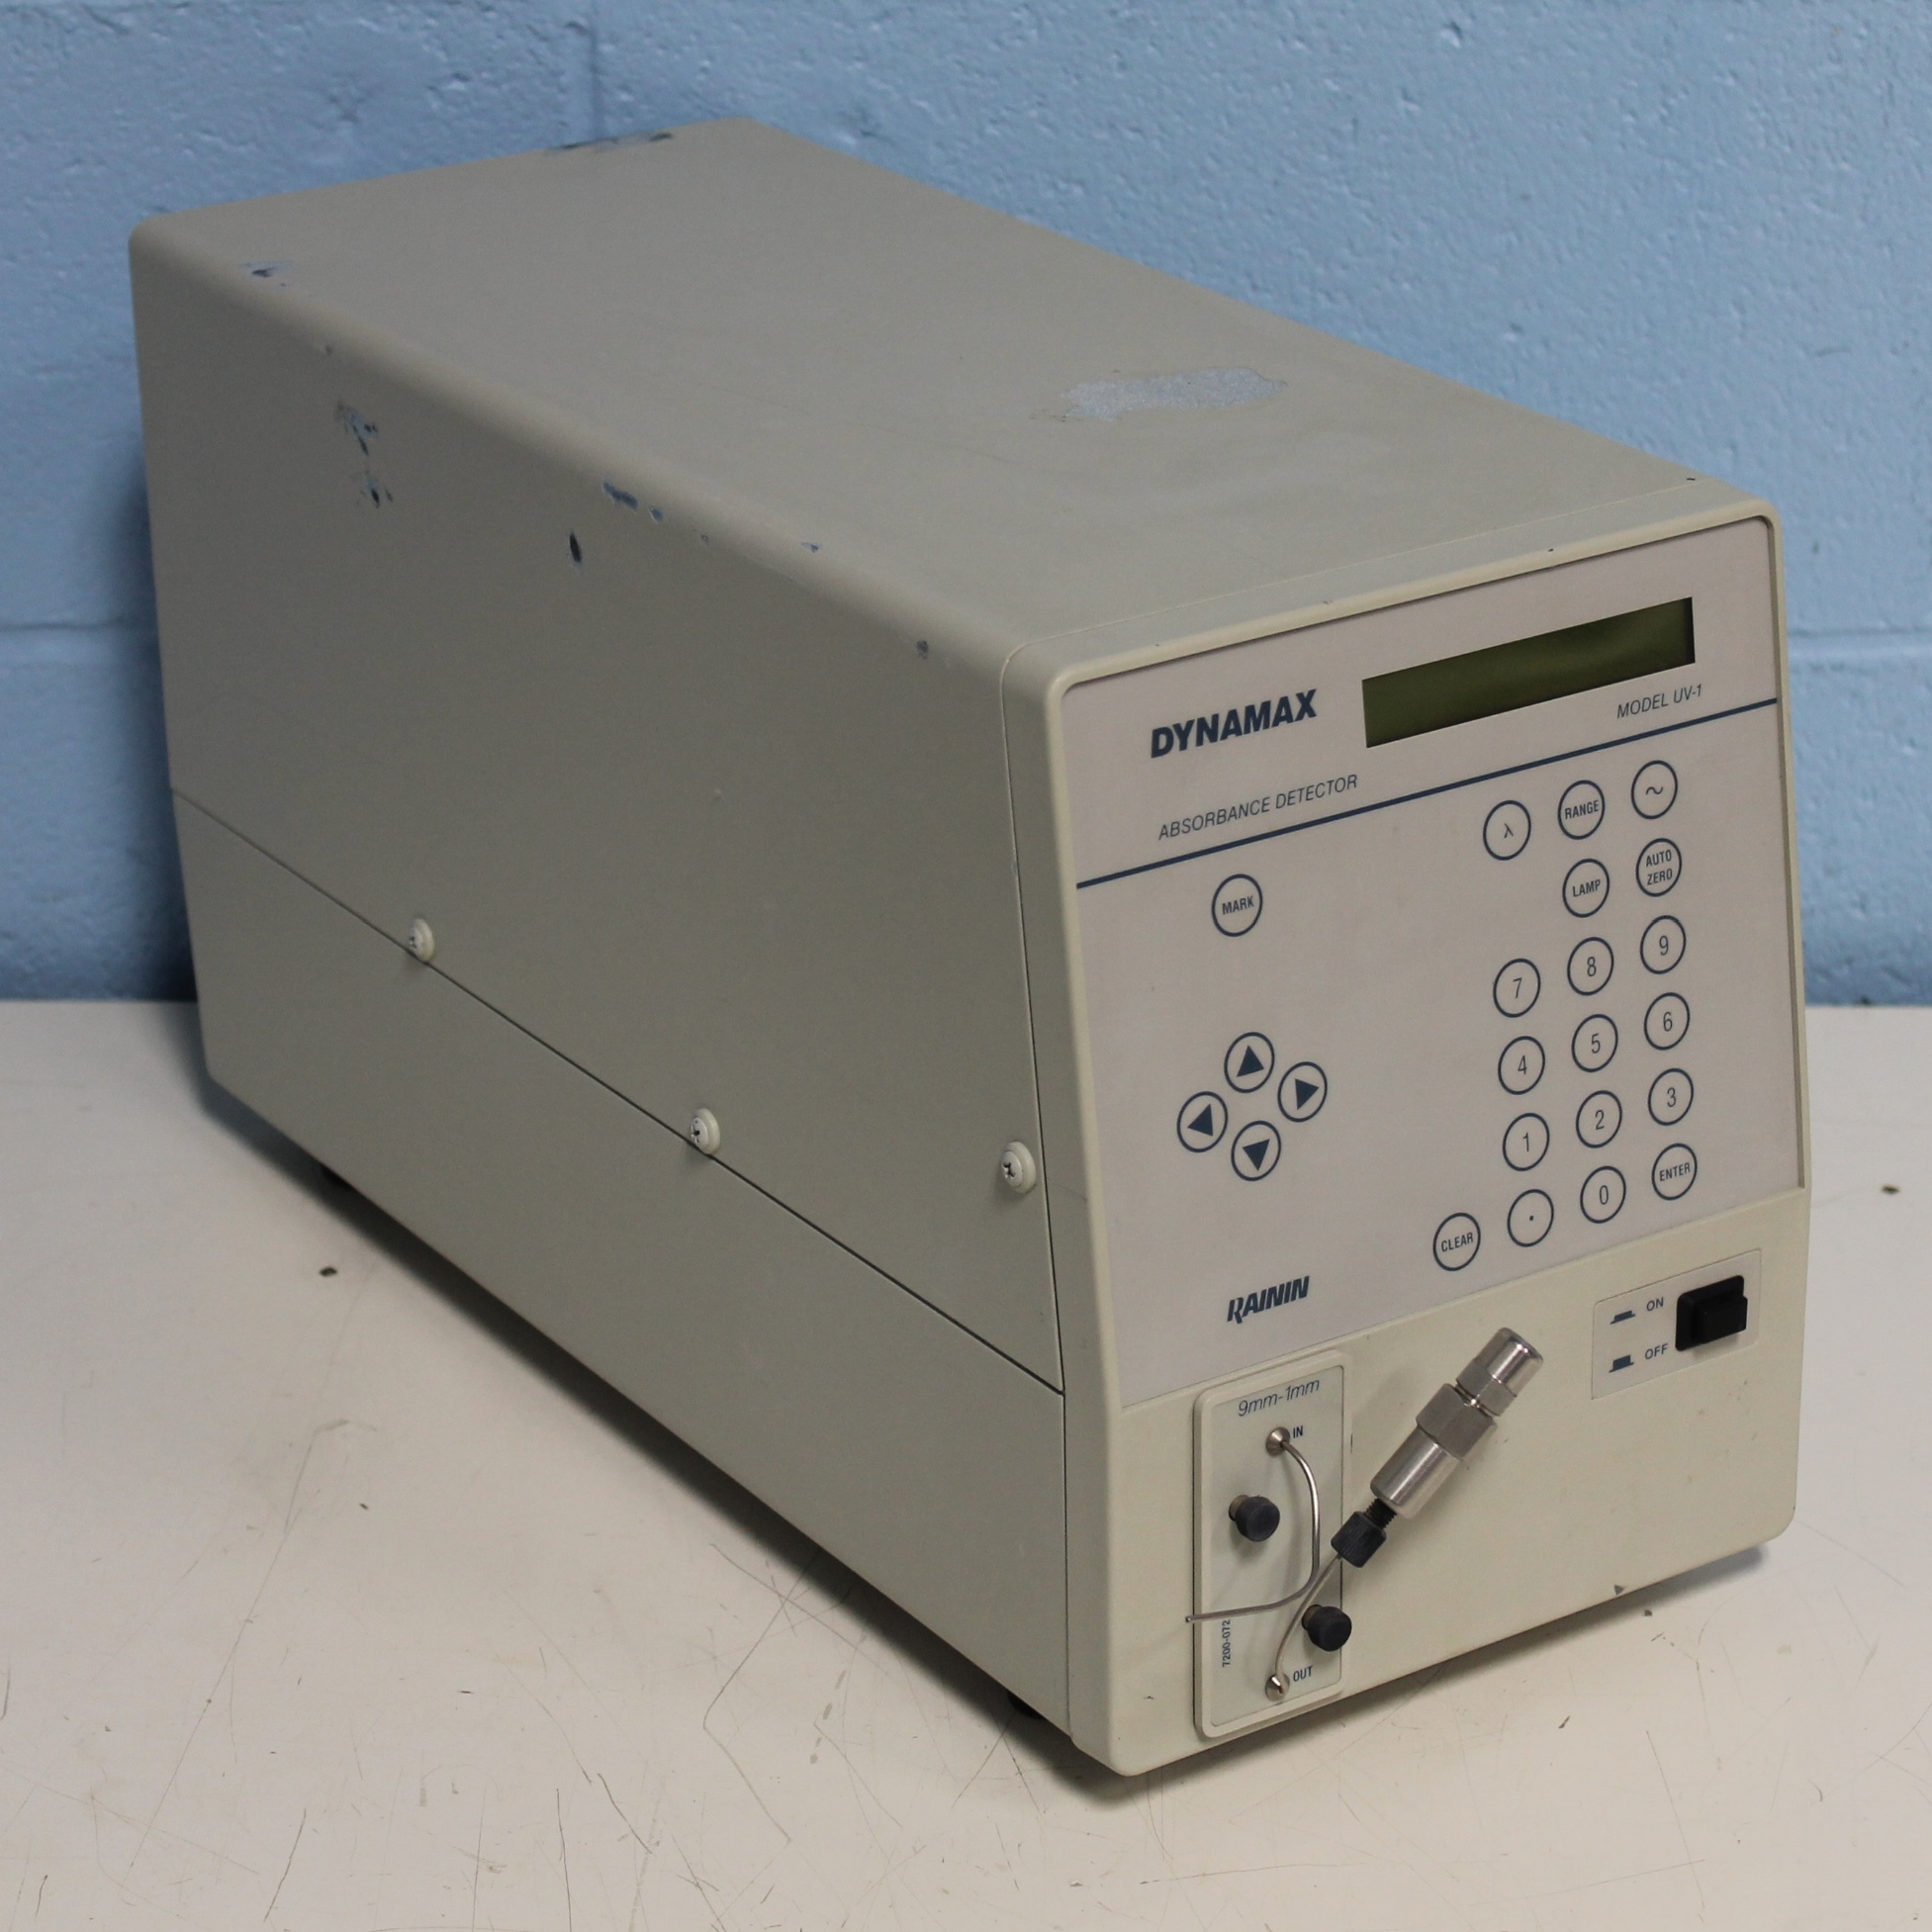 Dynamax Rainin Absorbance Detector Model UV-1 Image